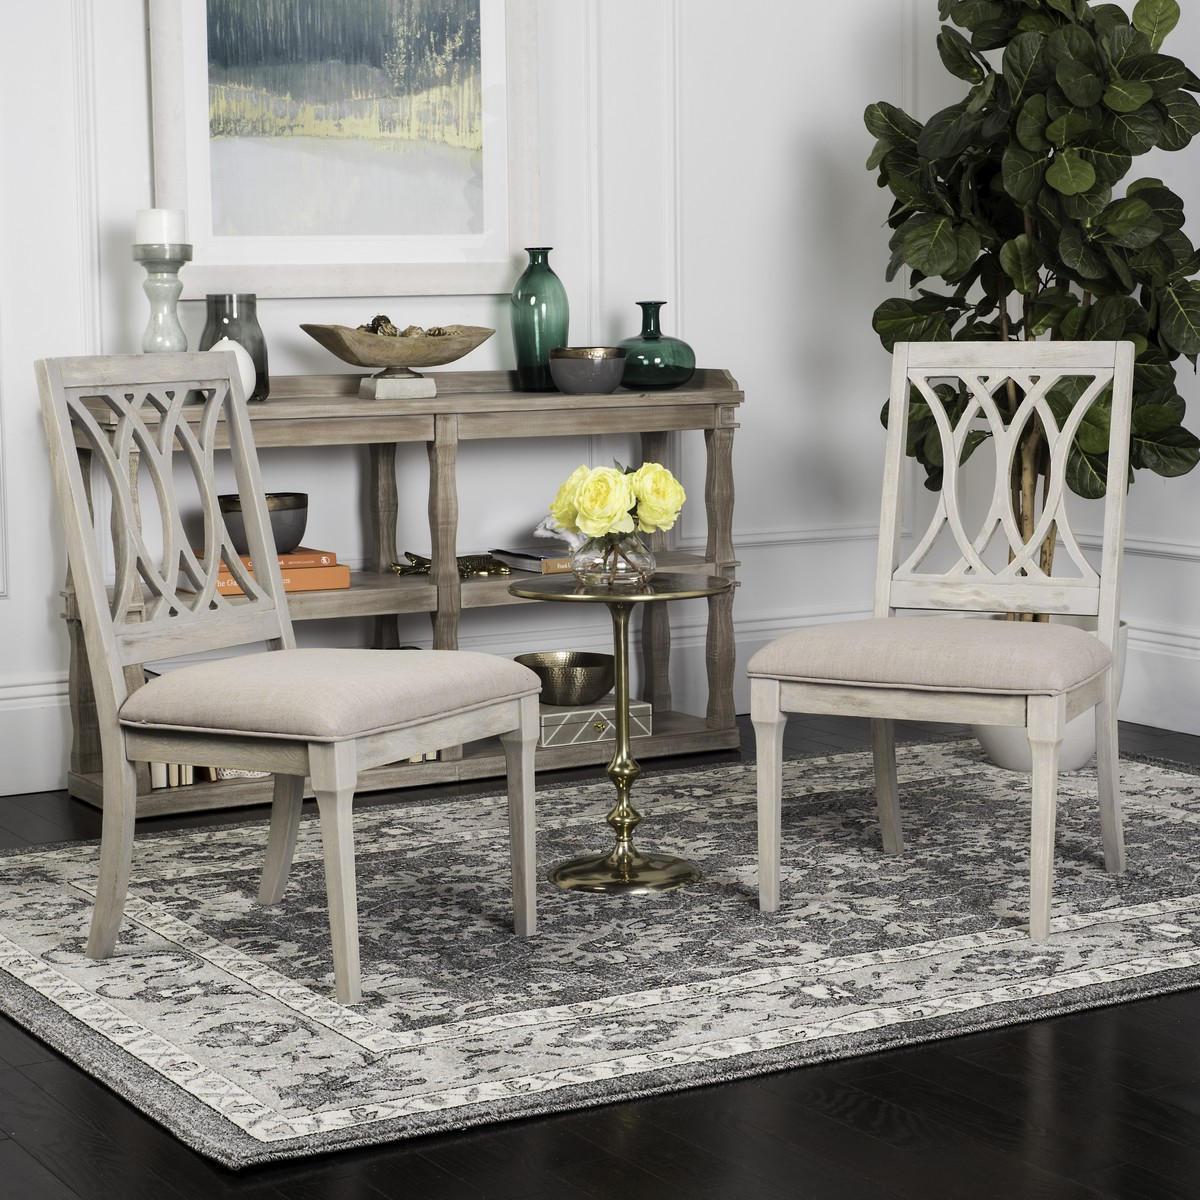 FOX6265C-SET2 Dining Chairs - Furniture by Safavieh